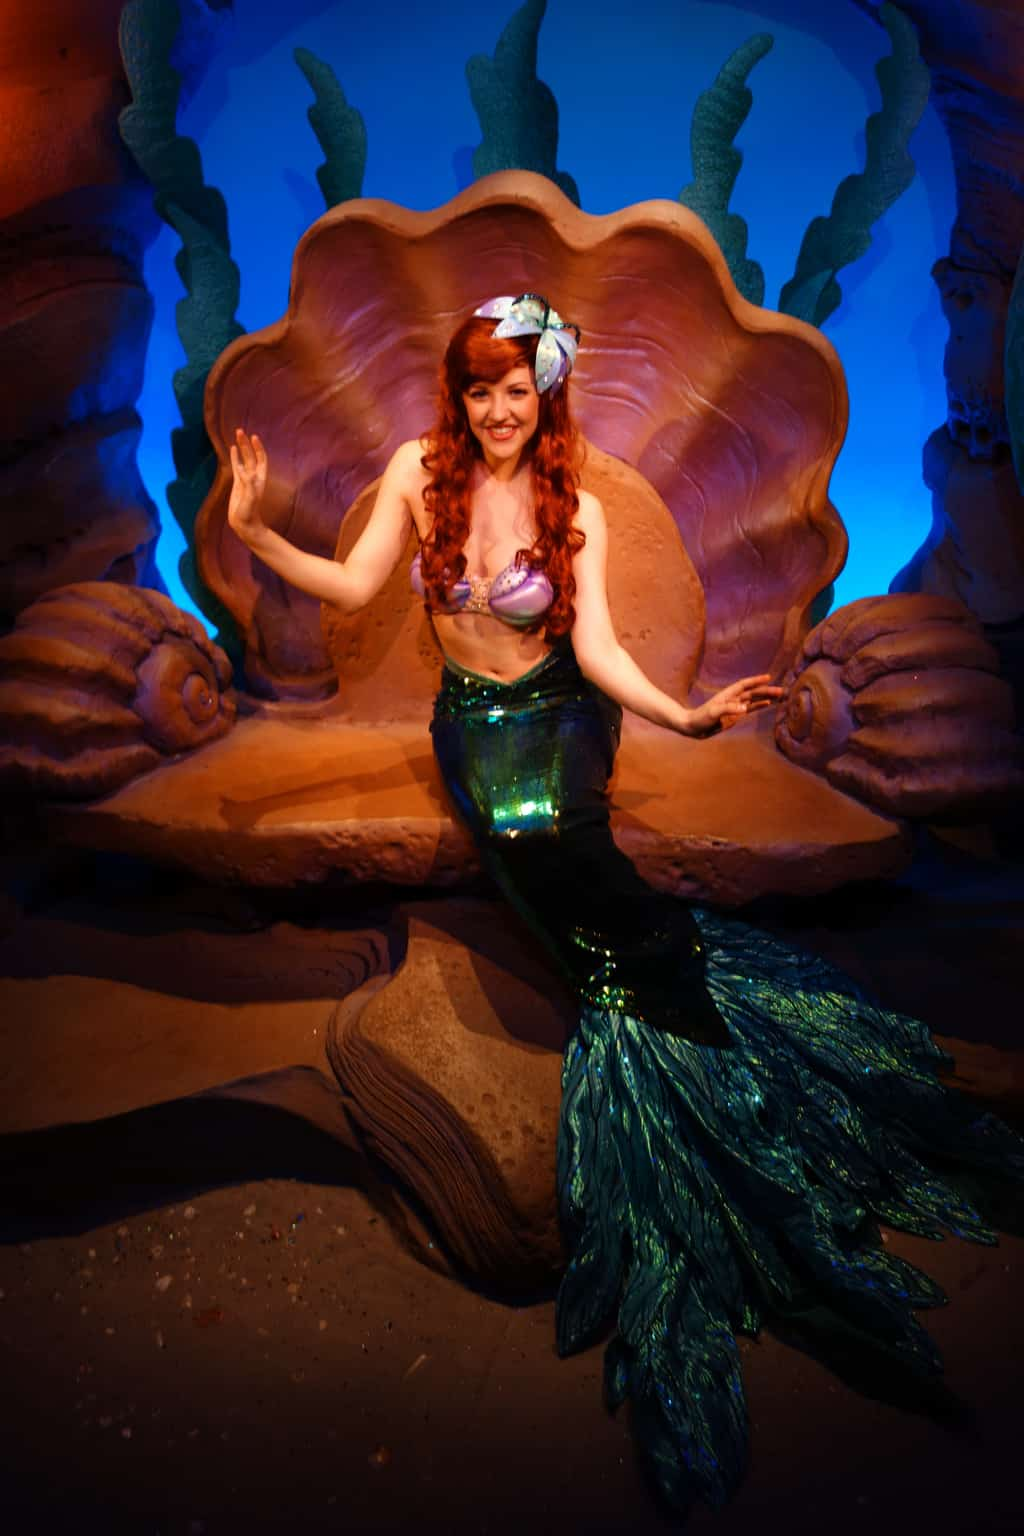 Ariel archives kennythepirate new grotto 2012 new grotto 2012 m4hsunfo